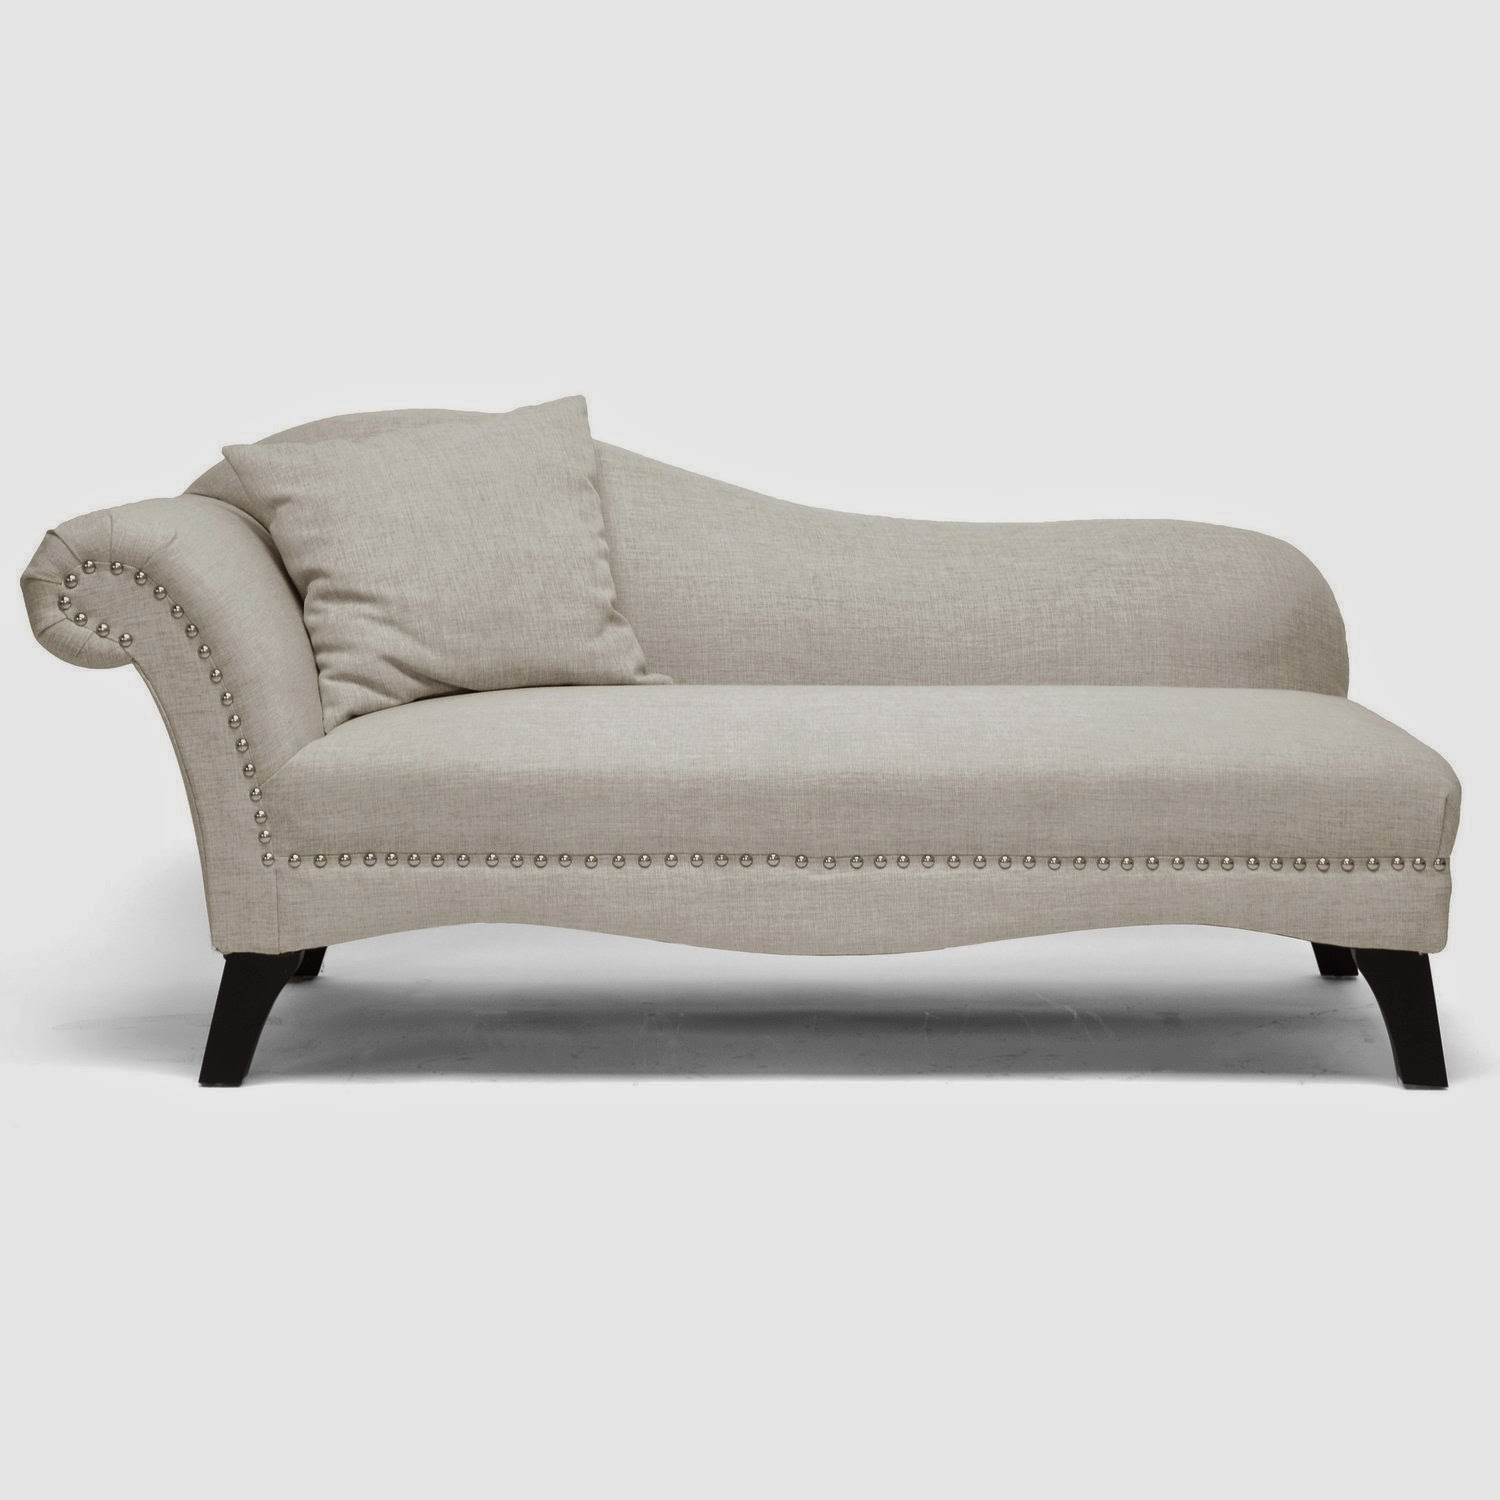 Chaise lounge sofa fainting couch for Chaise bed sofa